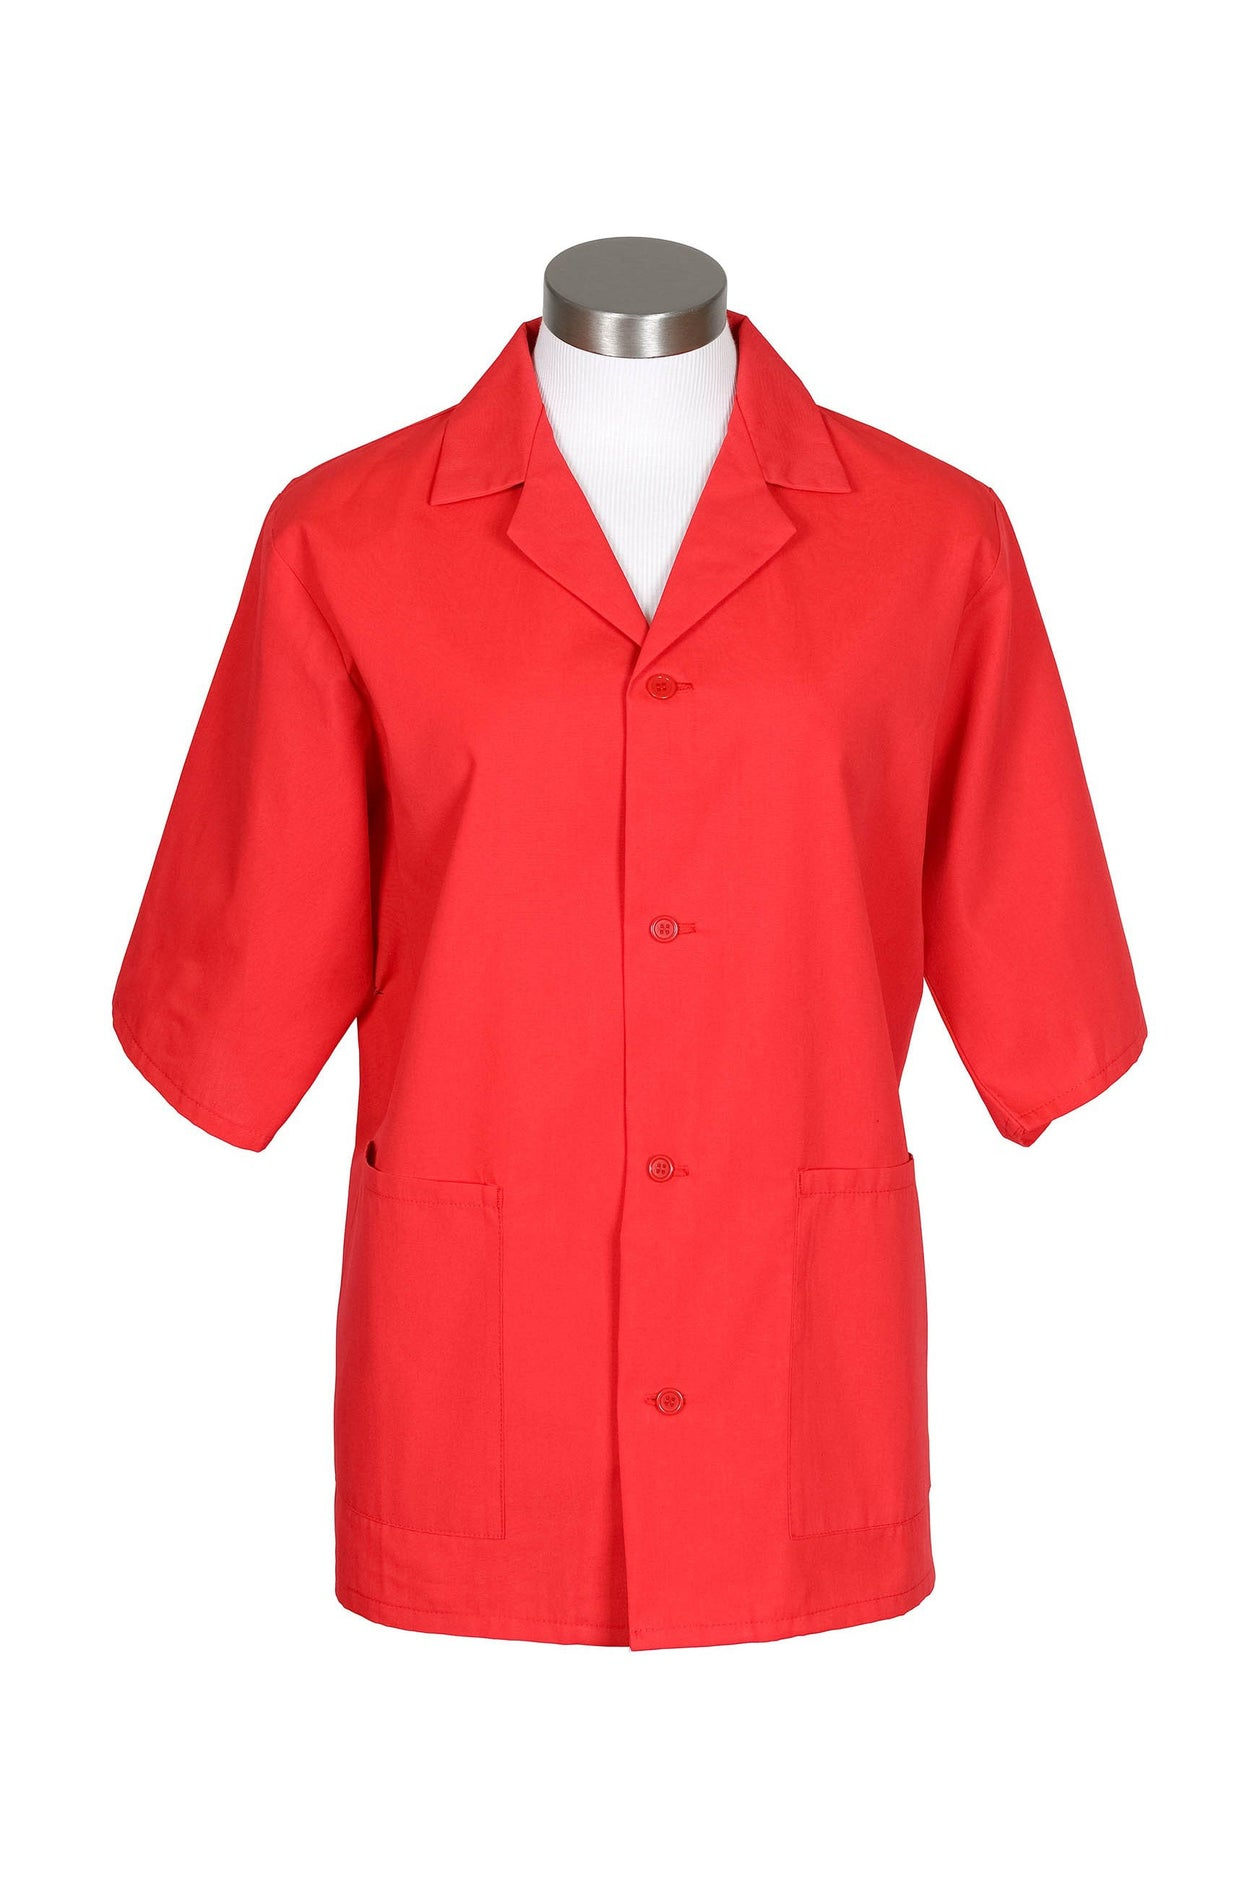 Red Unisex Smock